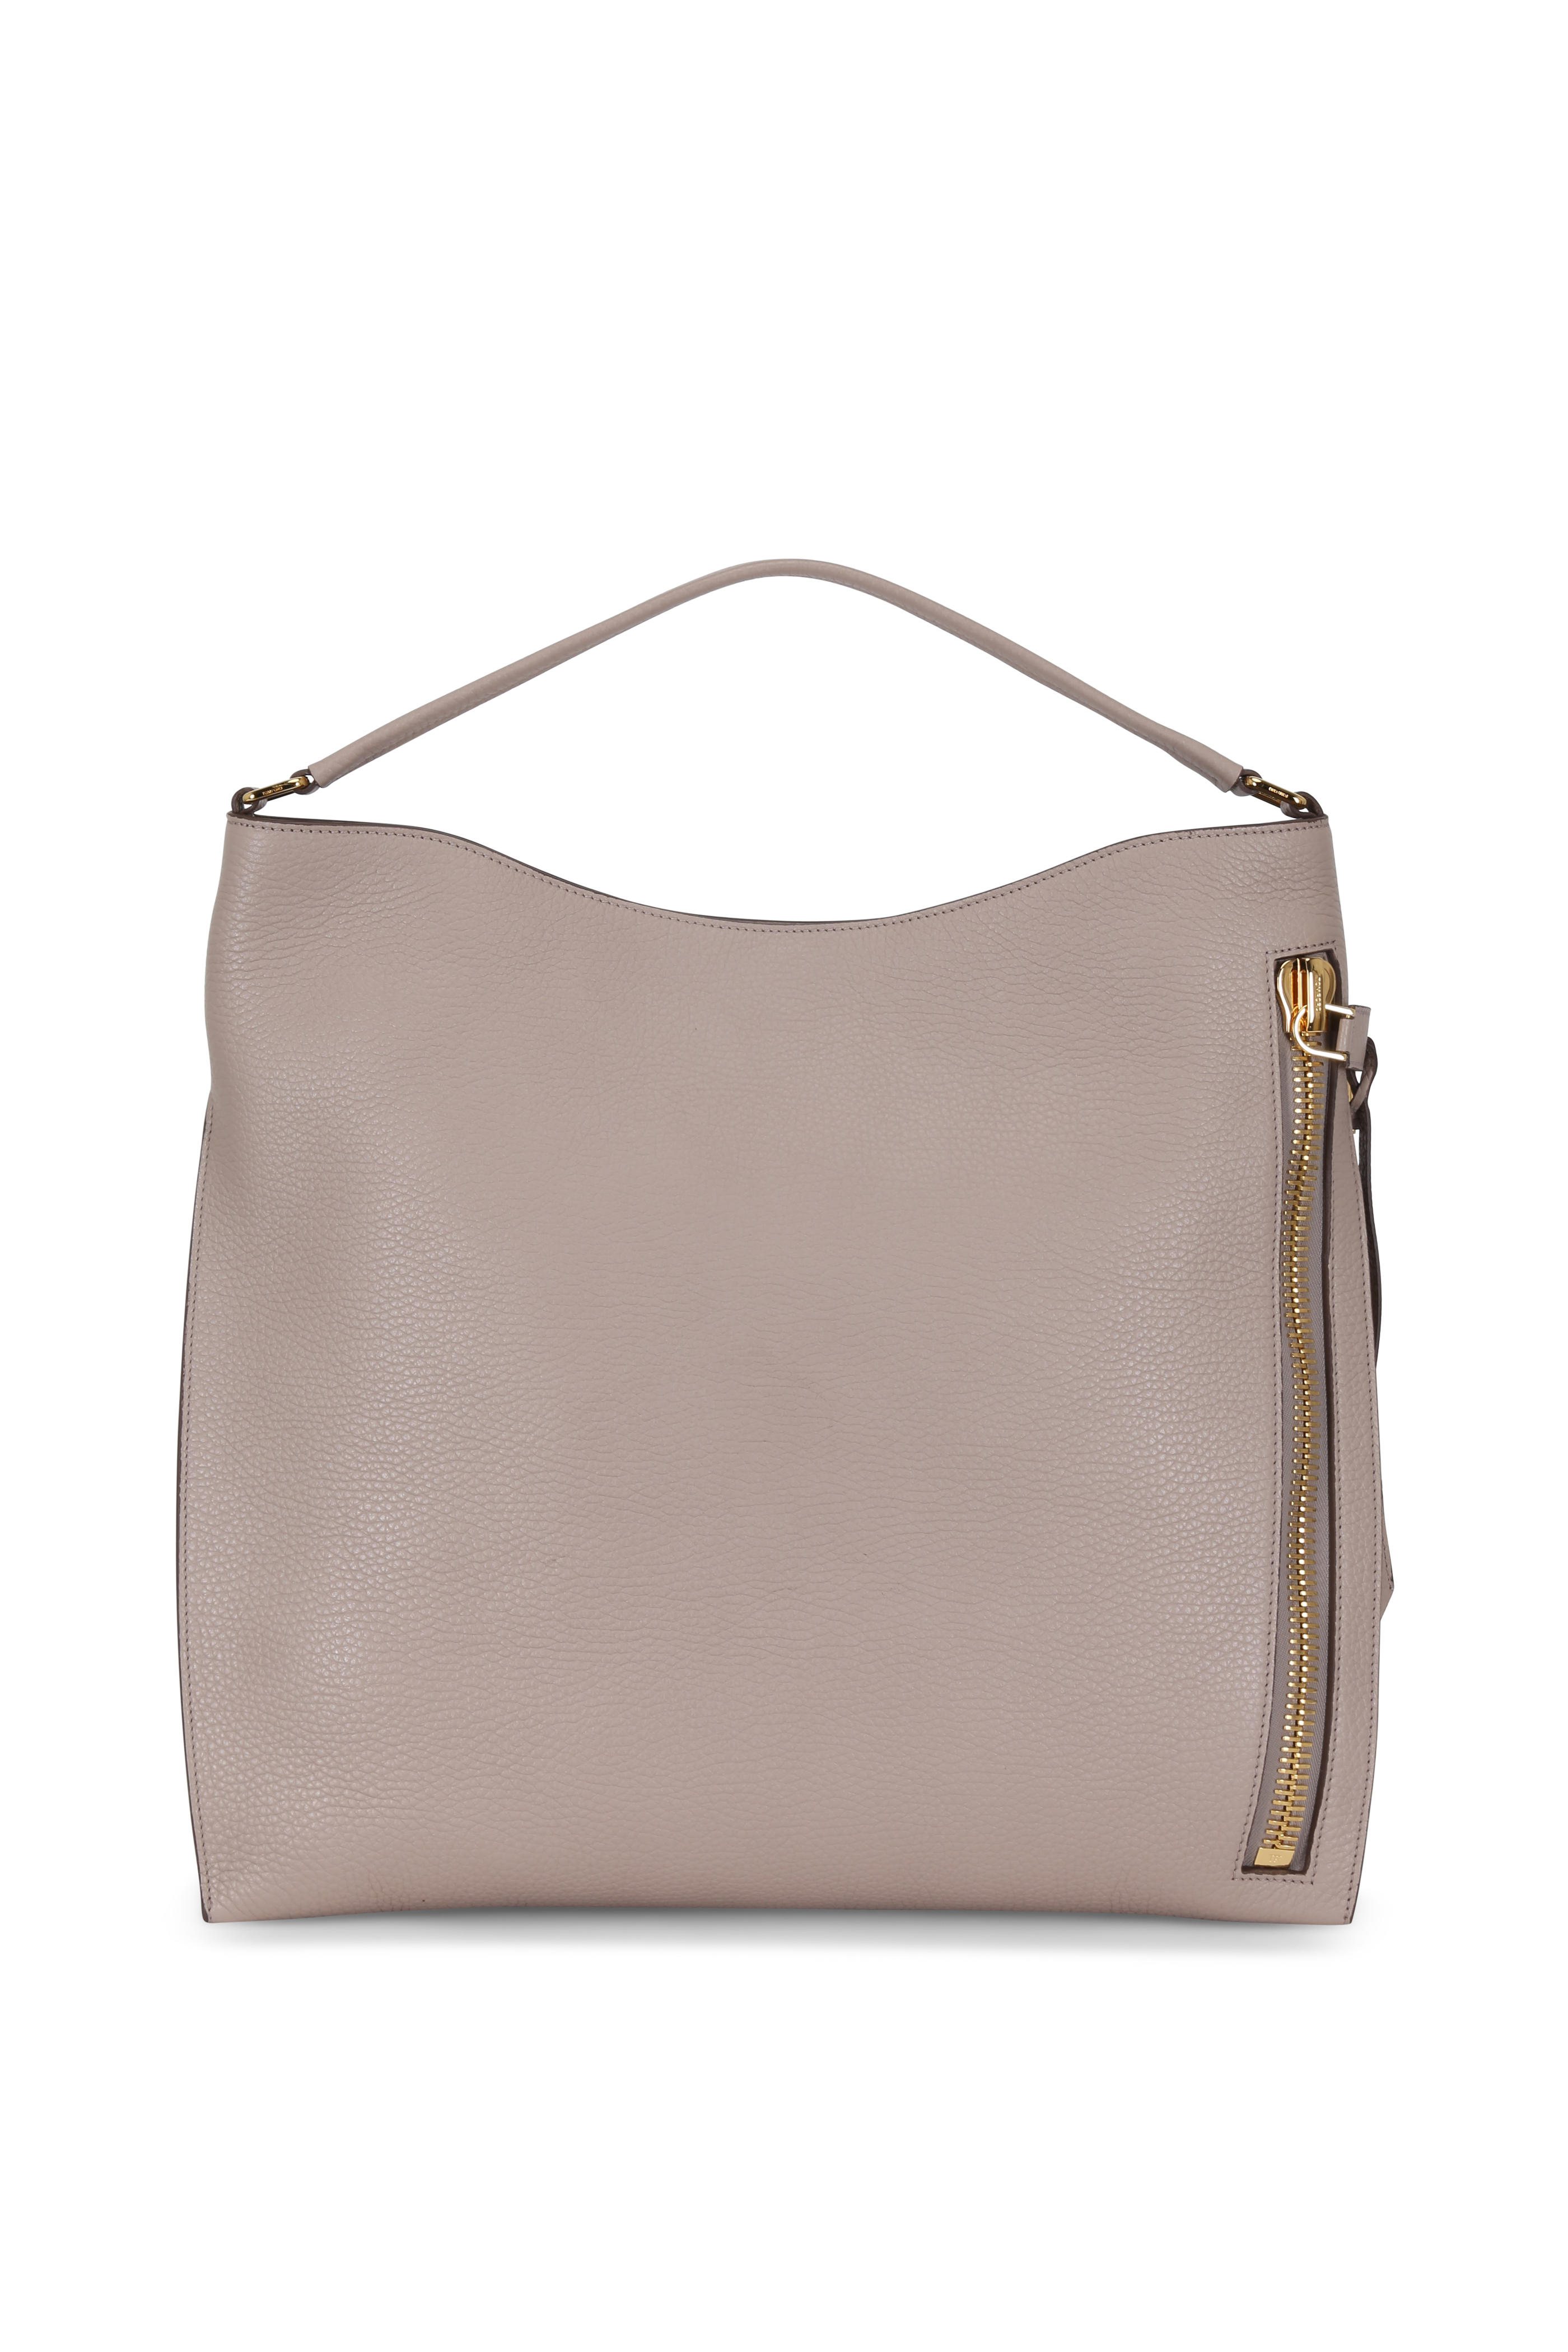 9b5ab0616 Tom Ford - Alix Taupe Leather Large Hobo Bag | Mitchell Stores